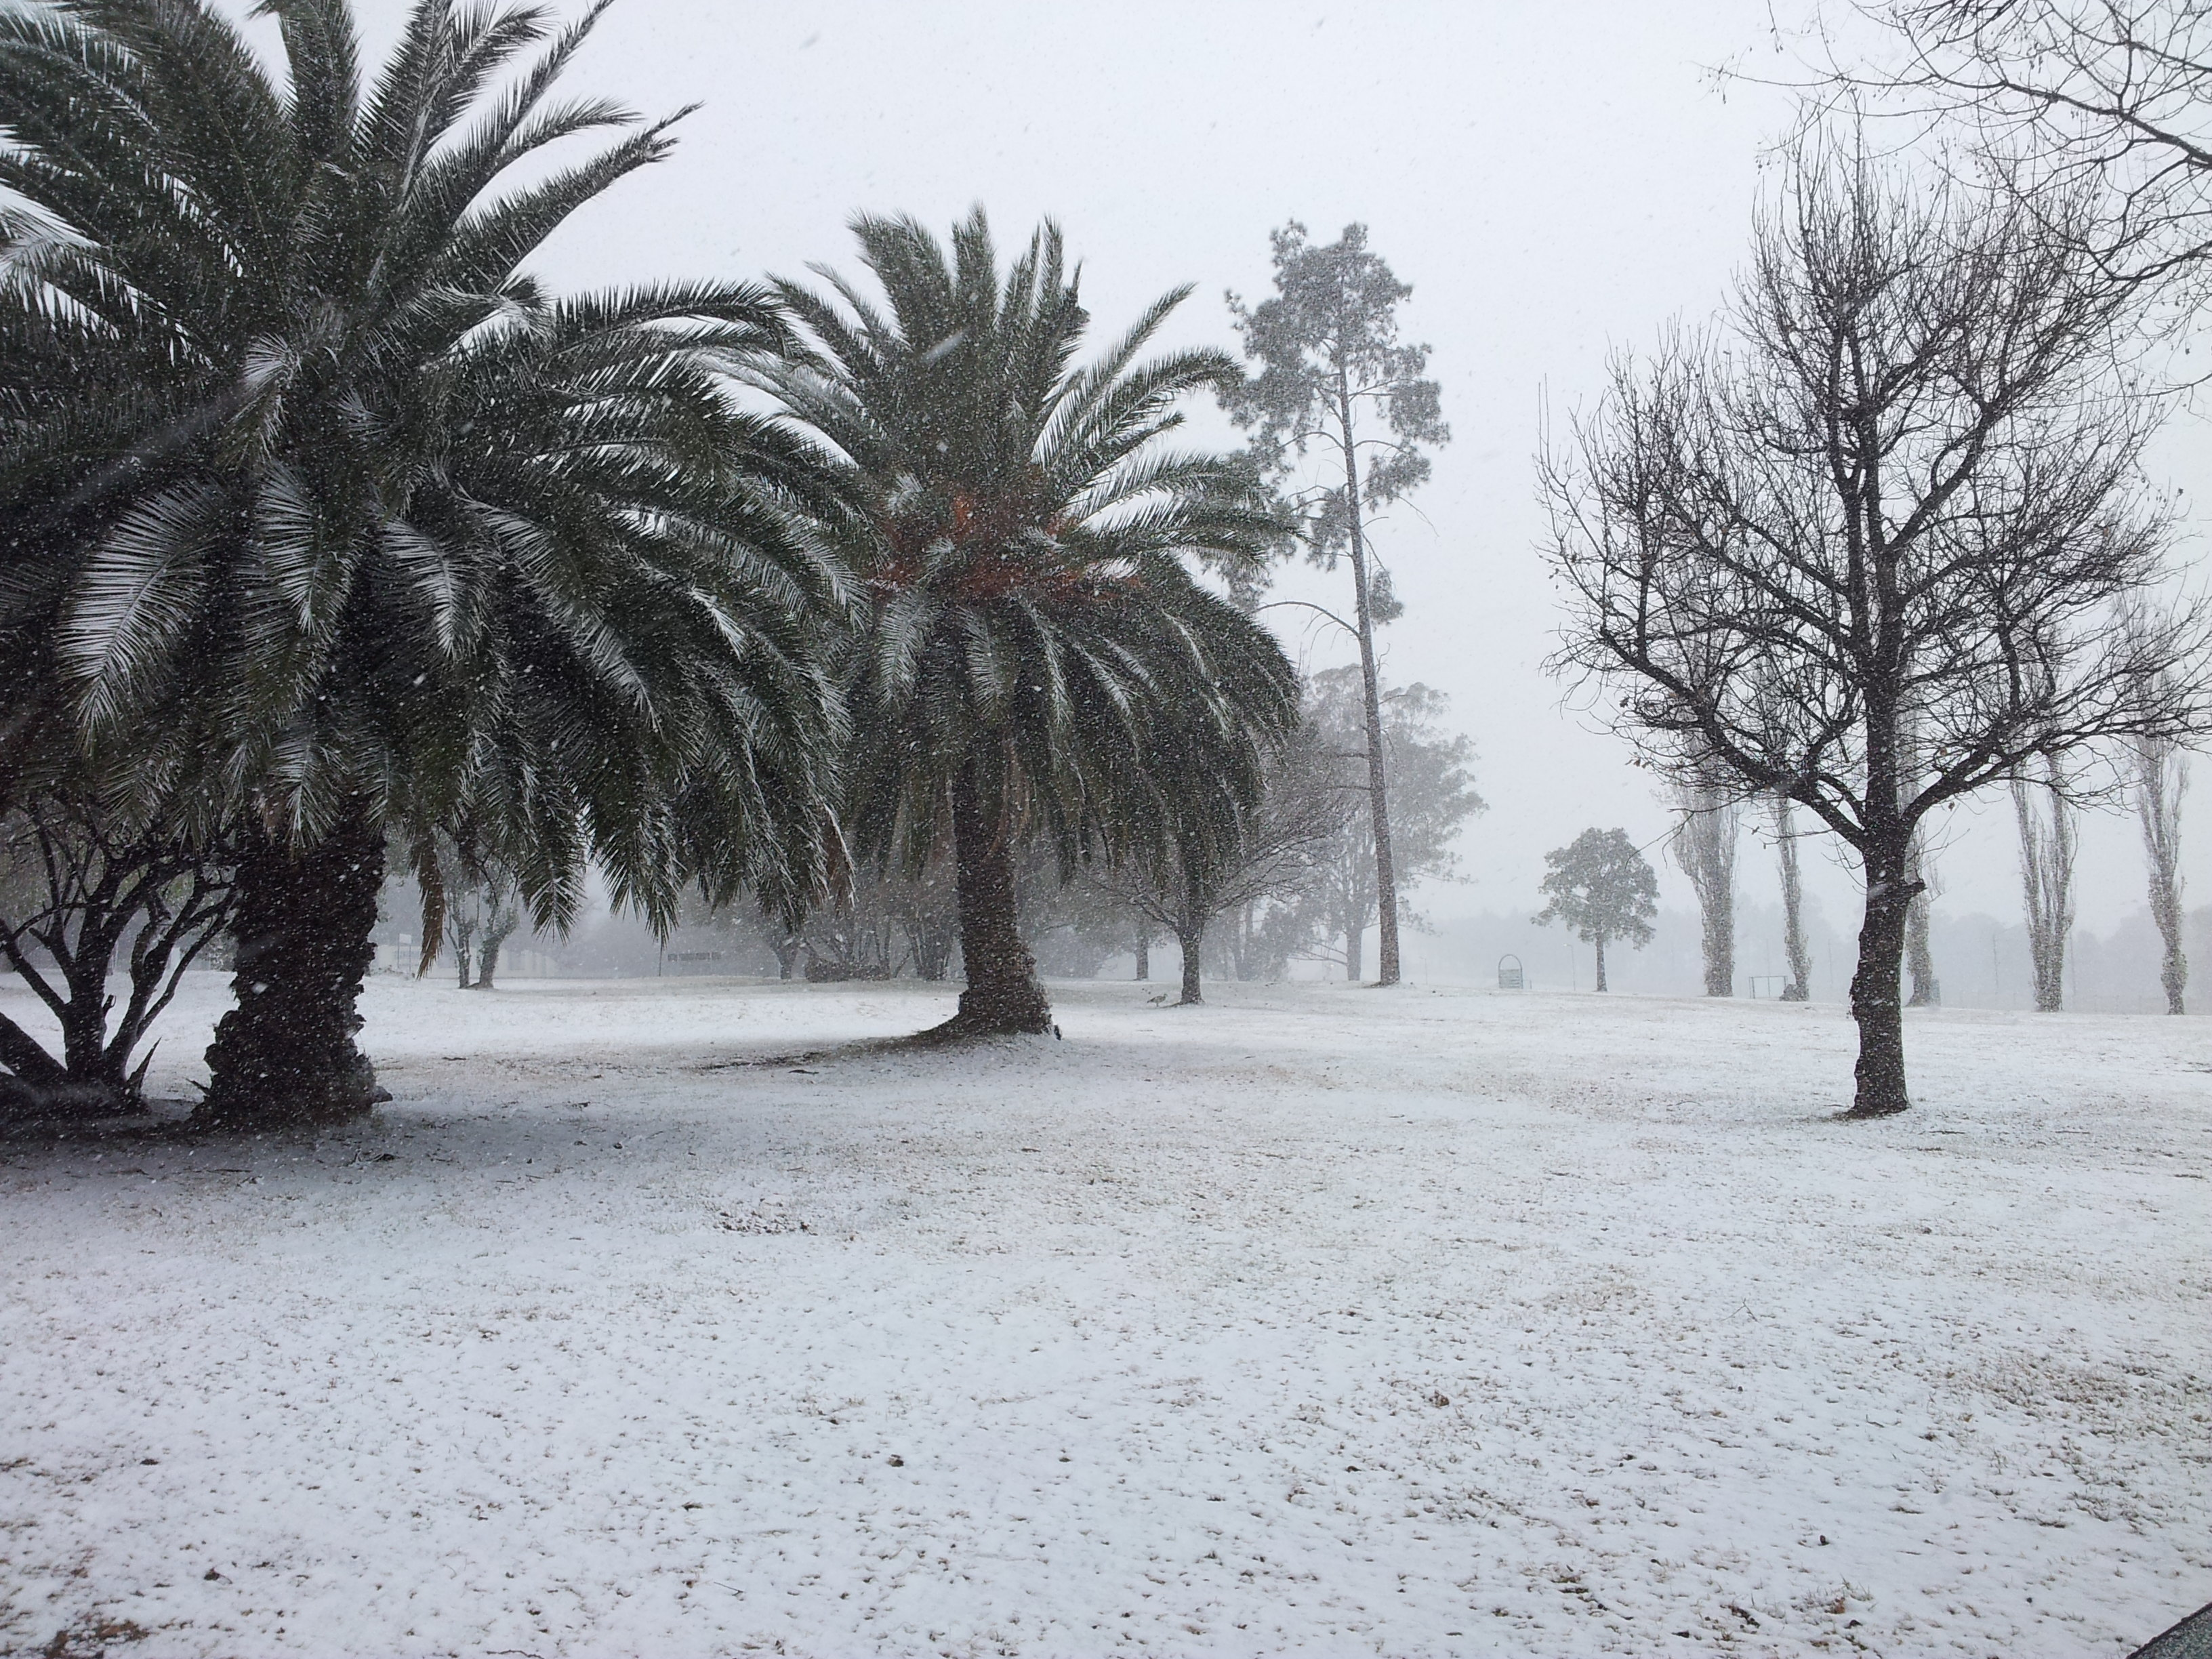 Snow Spotters – Snow in Modderfontein, Roshnee, Vaal and other parts of South Africa